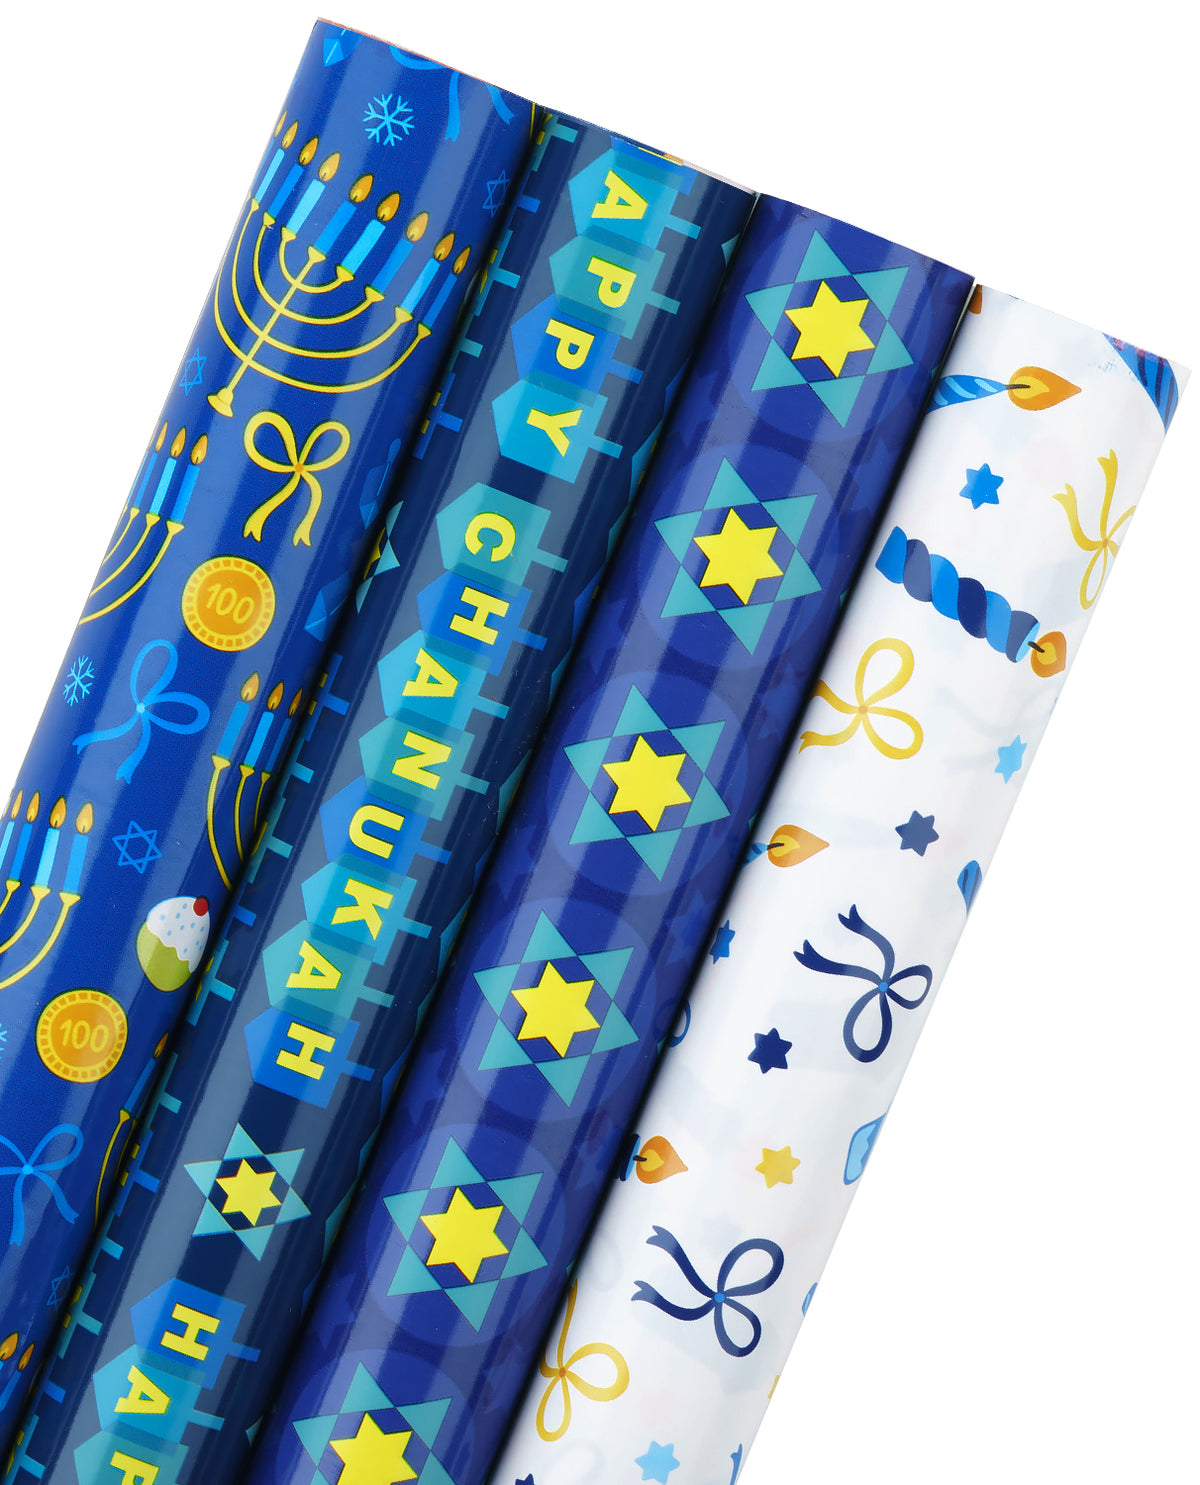 Wrapaholic-Chanukah-Gift Wrapping-Paper-Roll-1